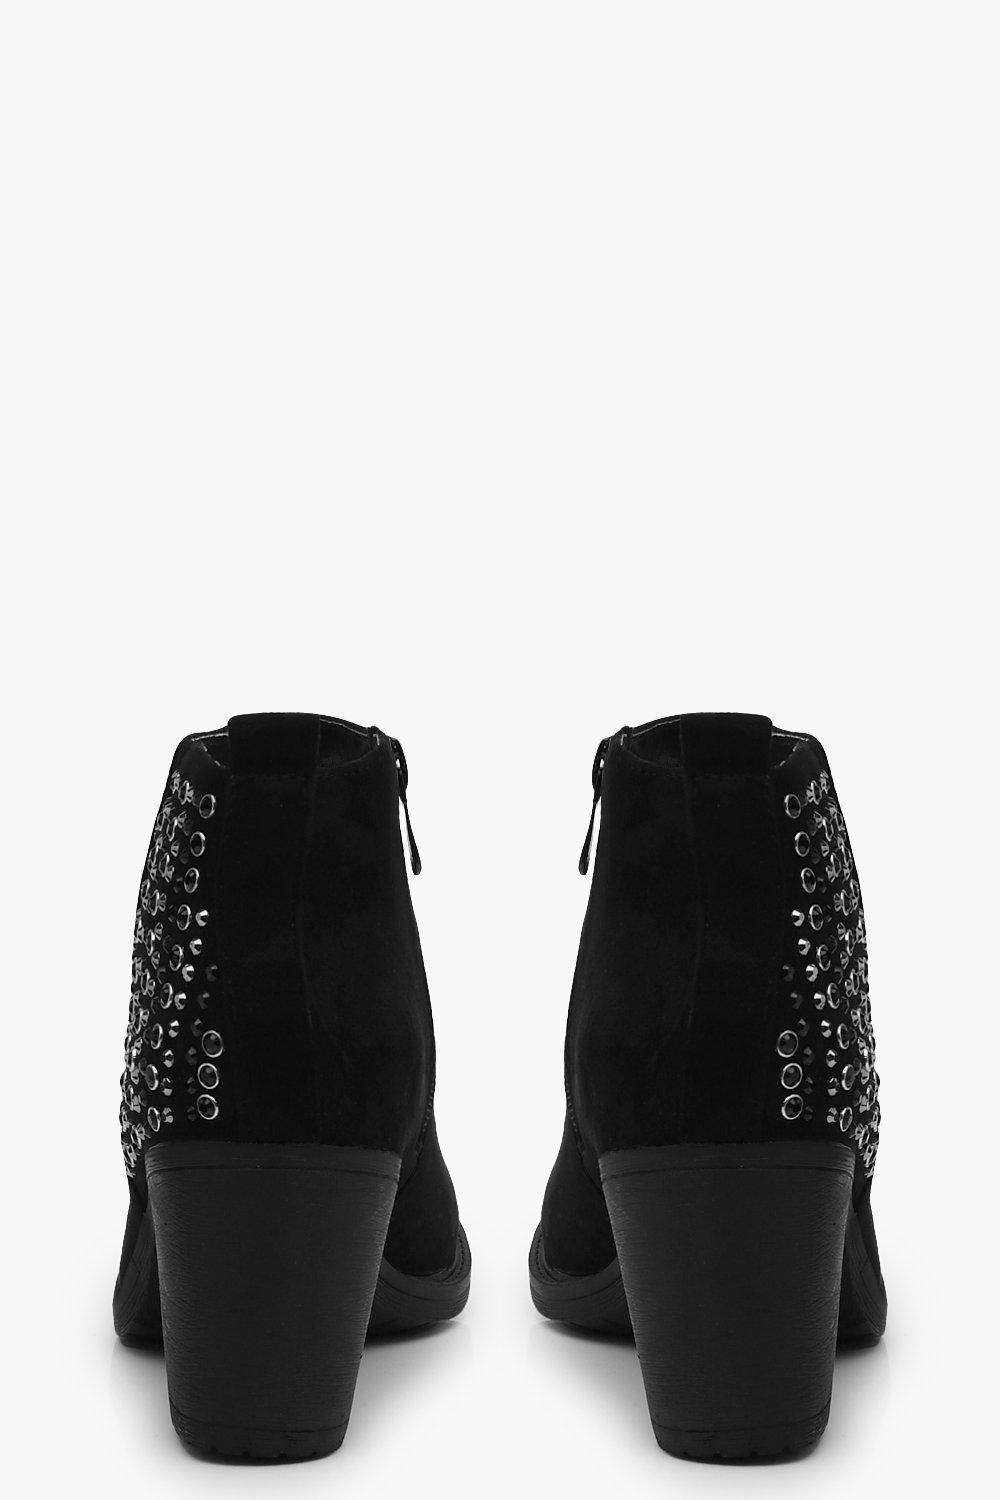 Boohoo Rebecca Diamante Back Counter Ankle Boot in Black